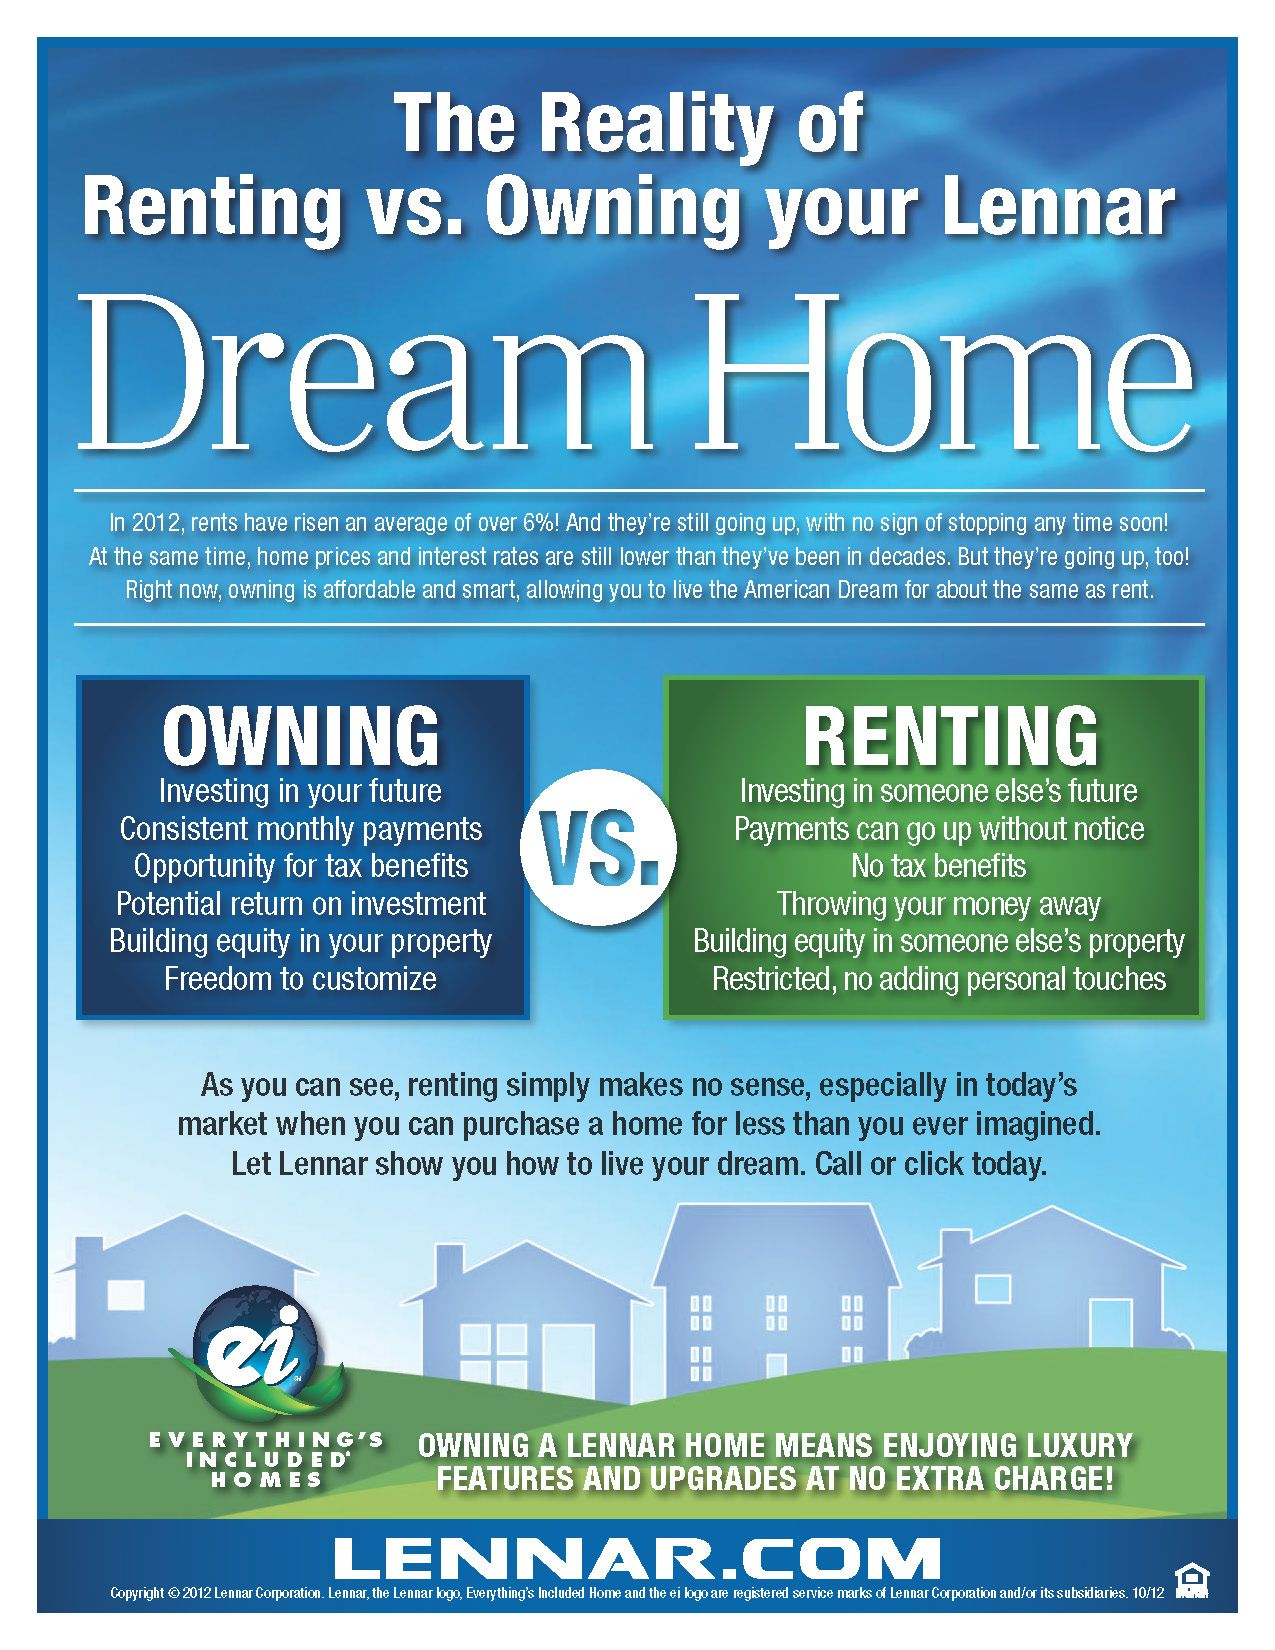 The Facts On Owning Vs Renting Http New Homes Lennar Com First